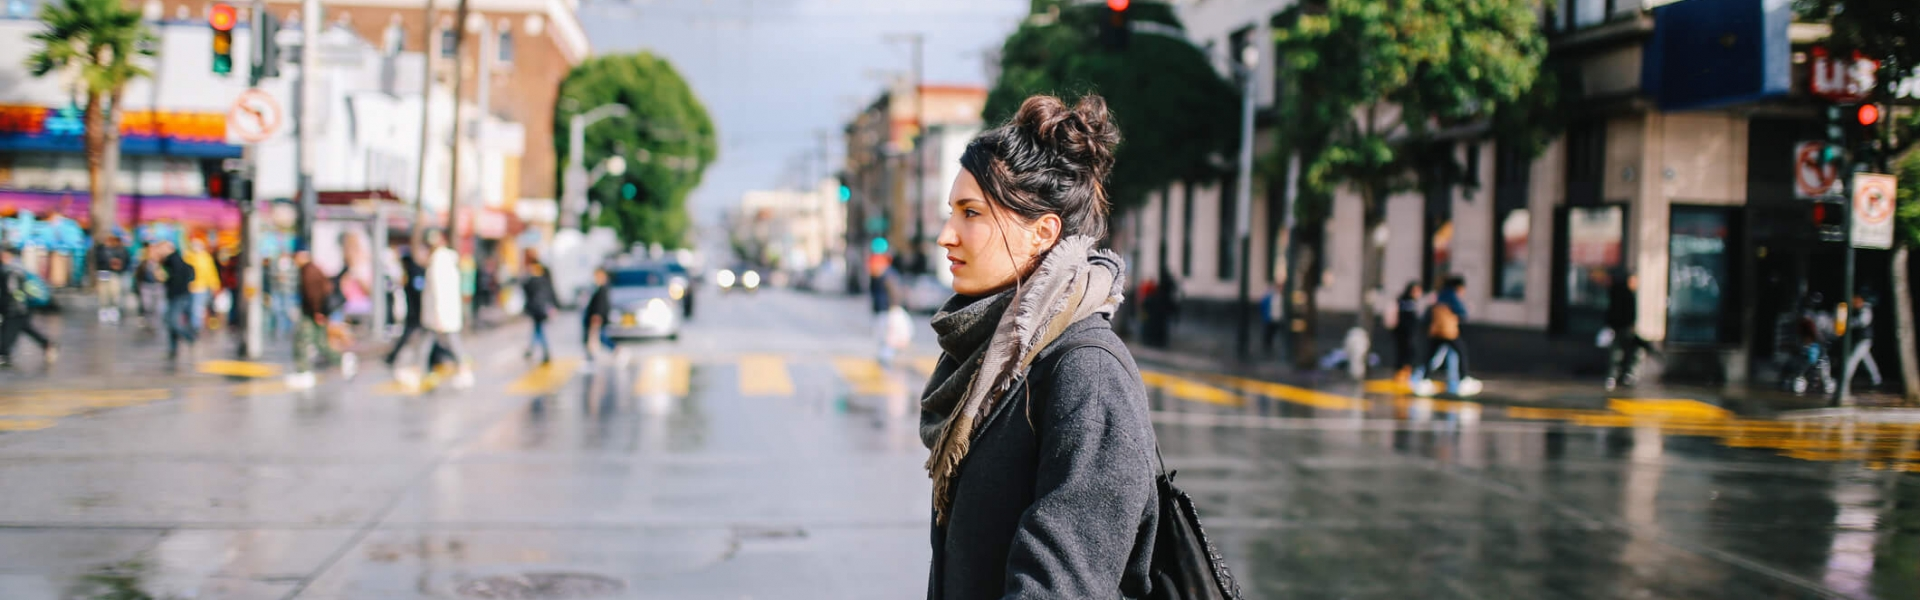 woman walks across the street in san francisco neighborhood